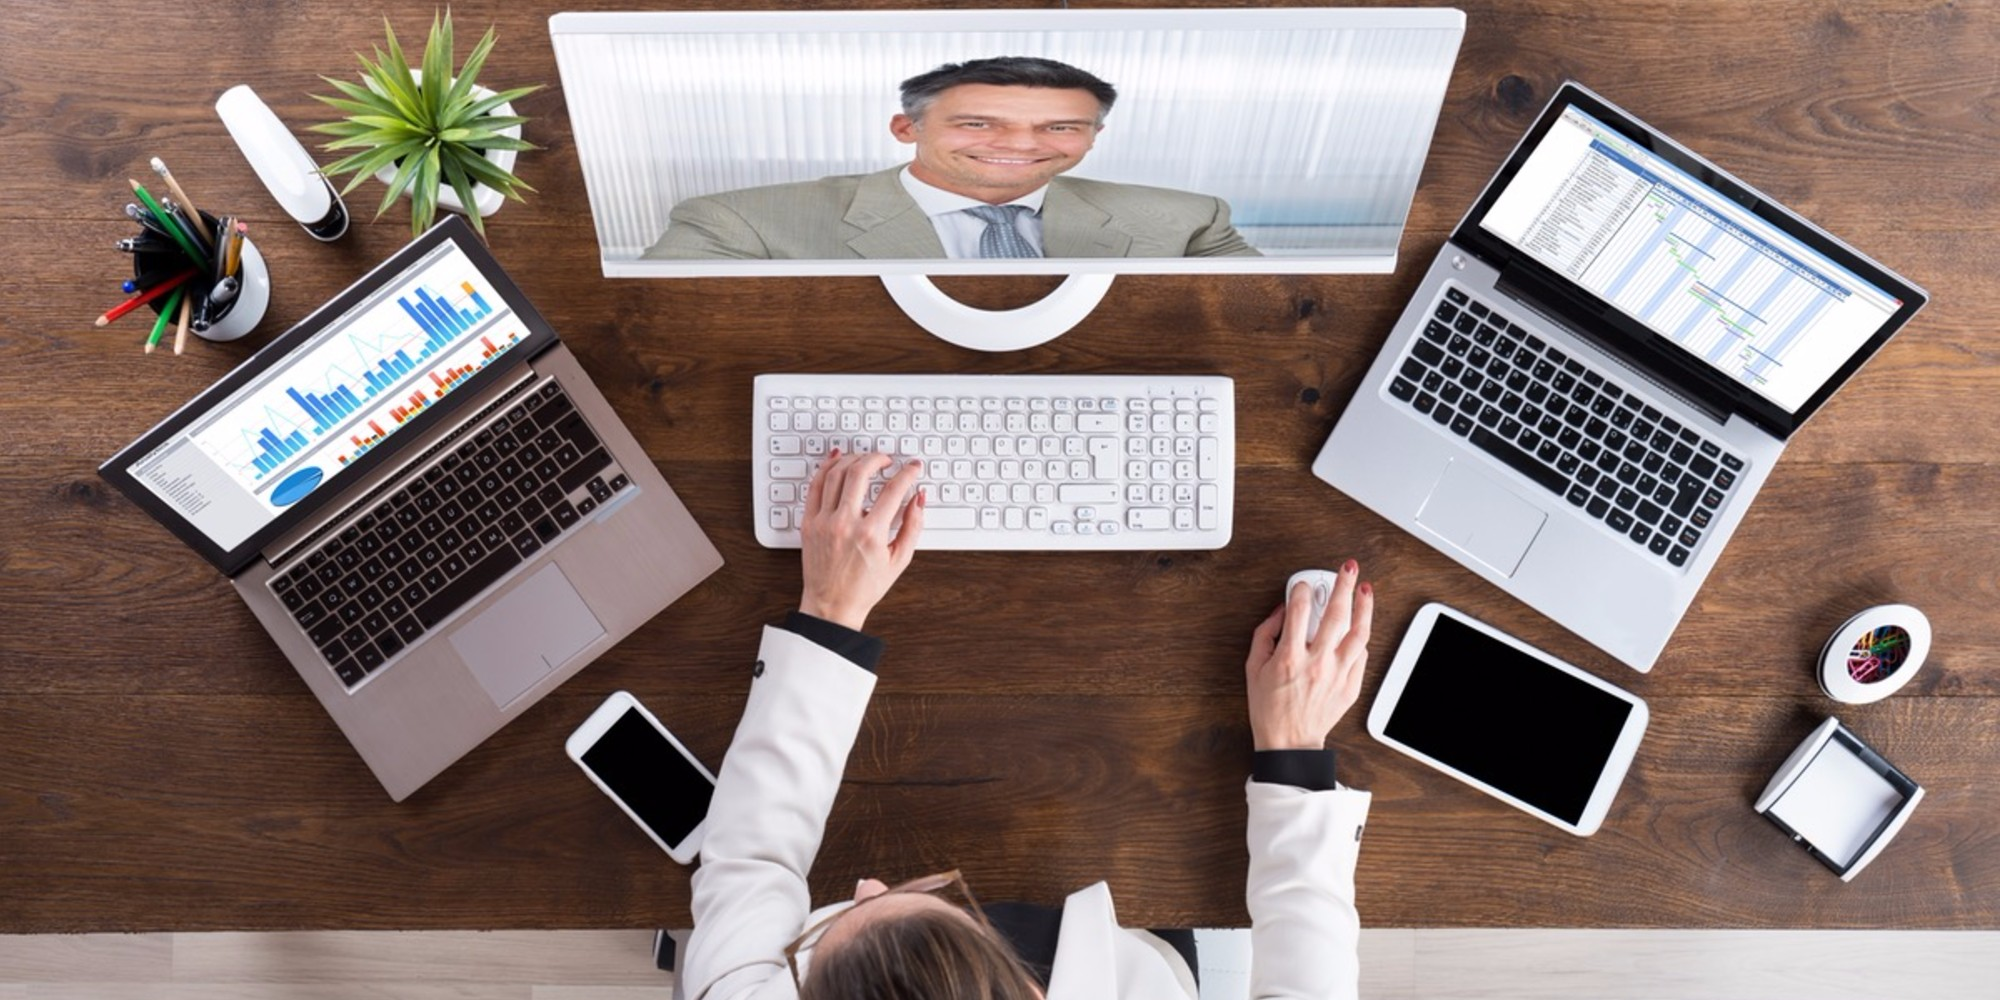 business woman having desktop video conference meeting with business man